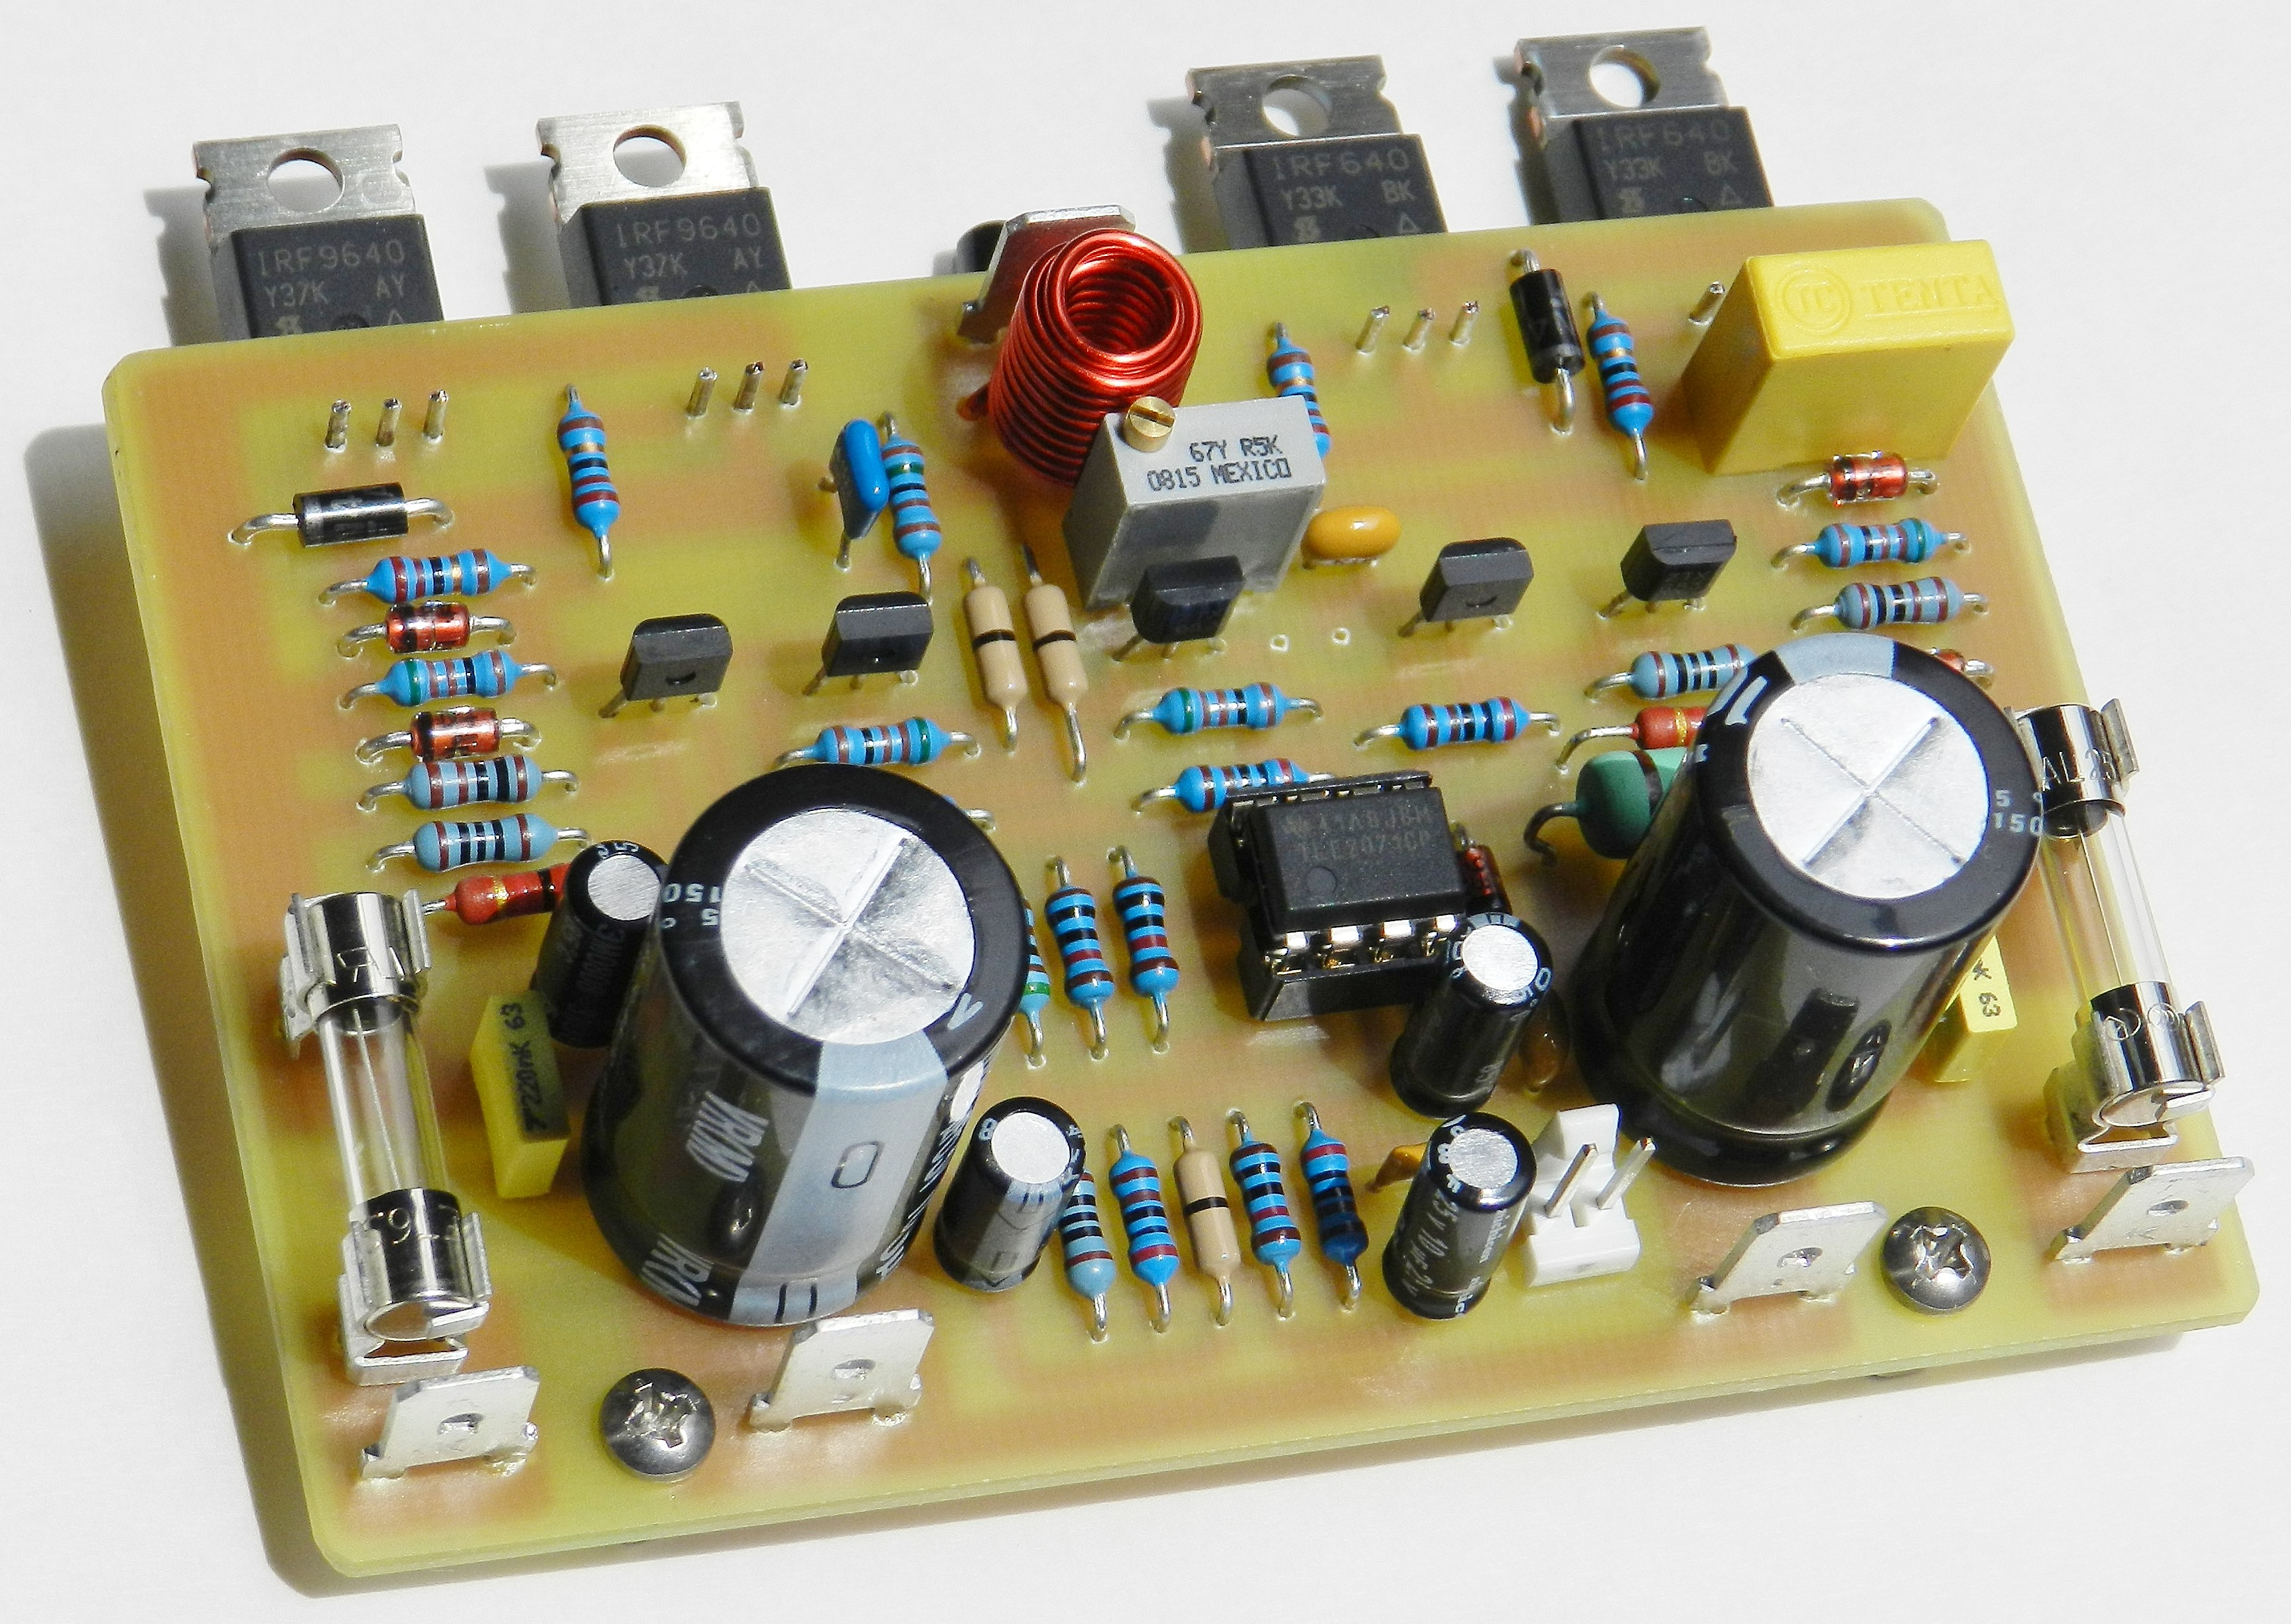 Firt Audio Amp Schematic Trusted Wiring Diagrams Diy 30 Watt Stereo Amplifier Circuit Gadgetronicx Project 62 Buildaudioamps